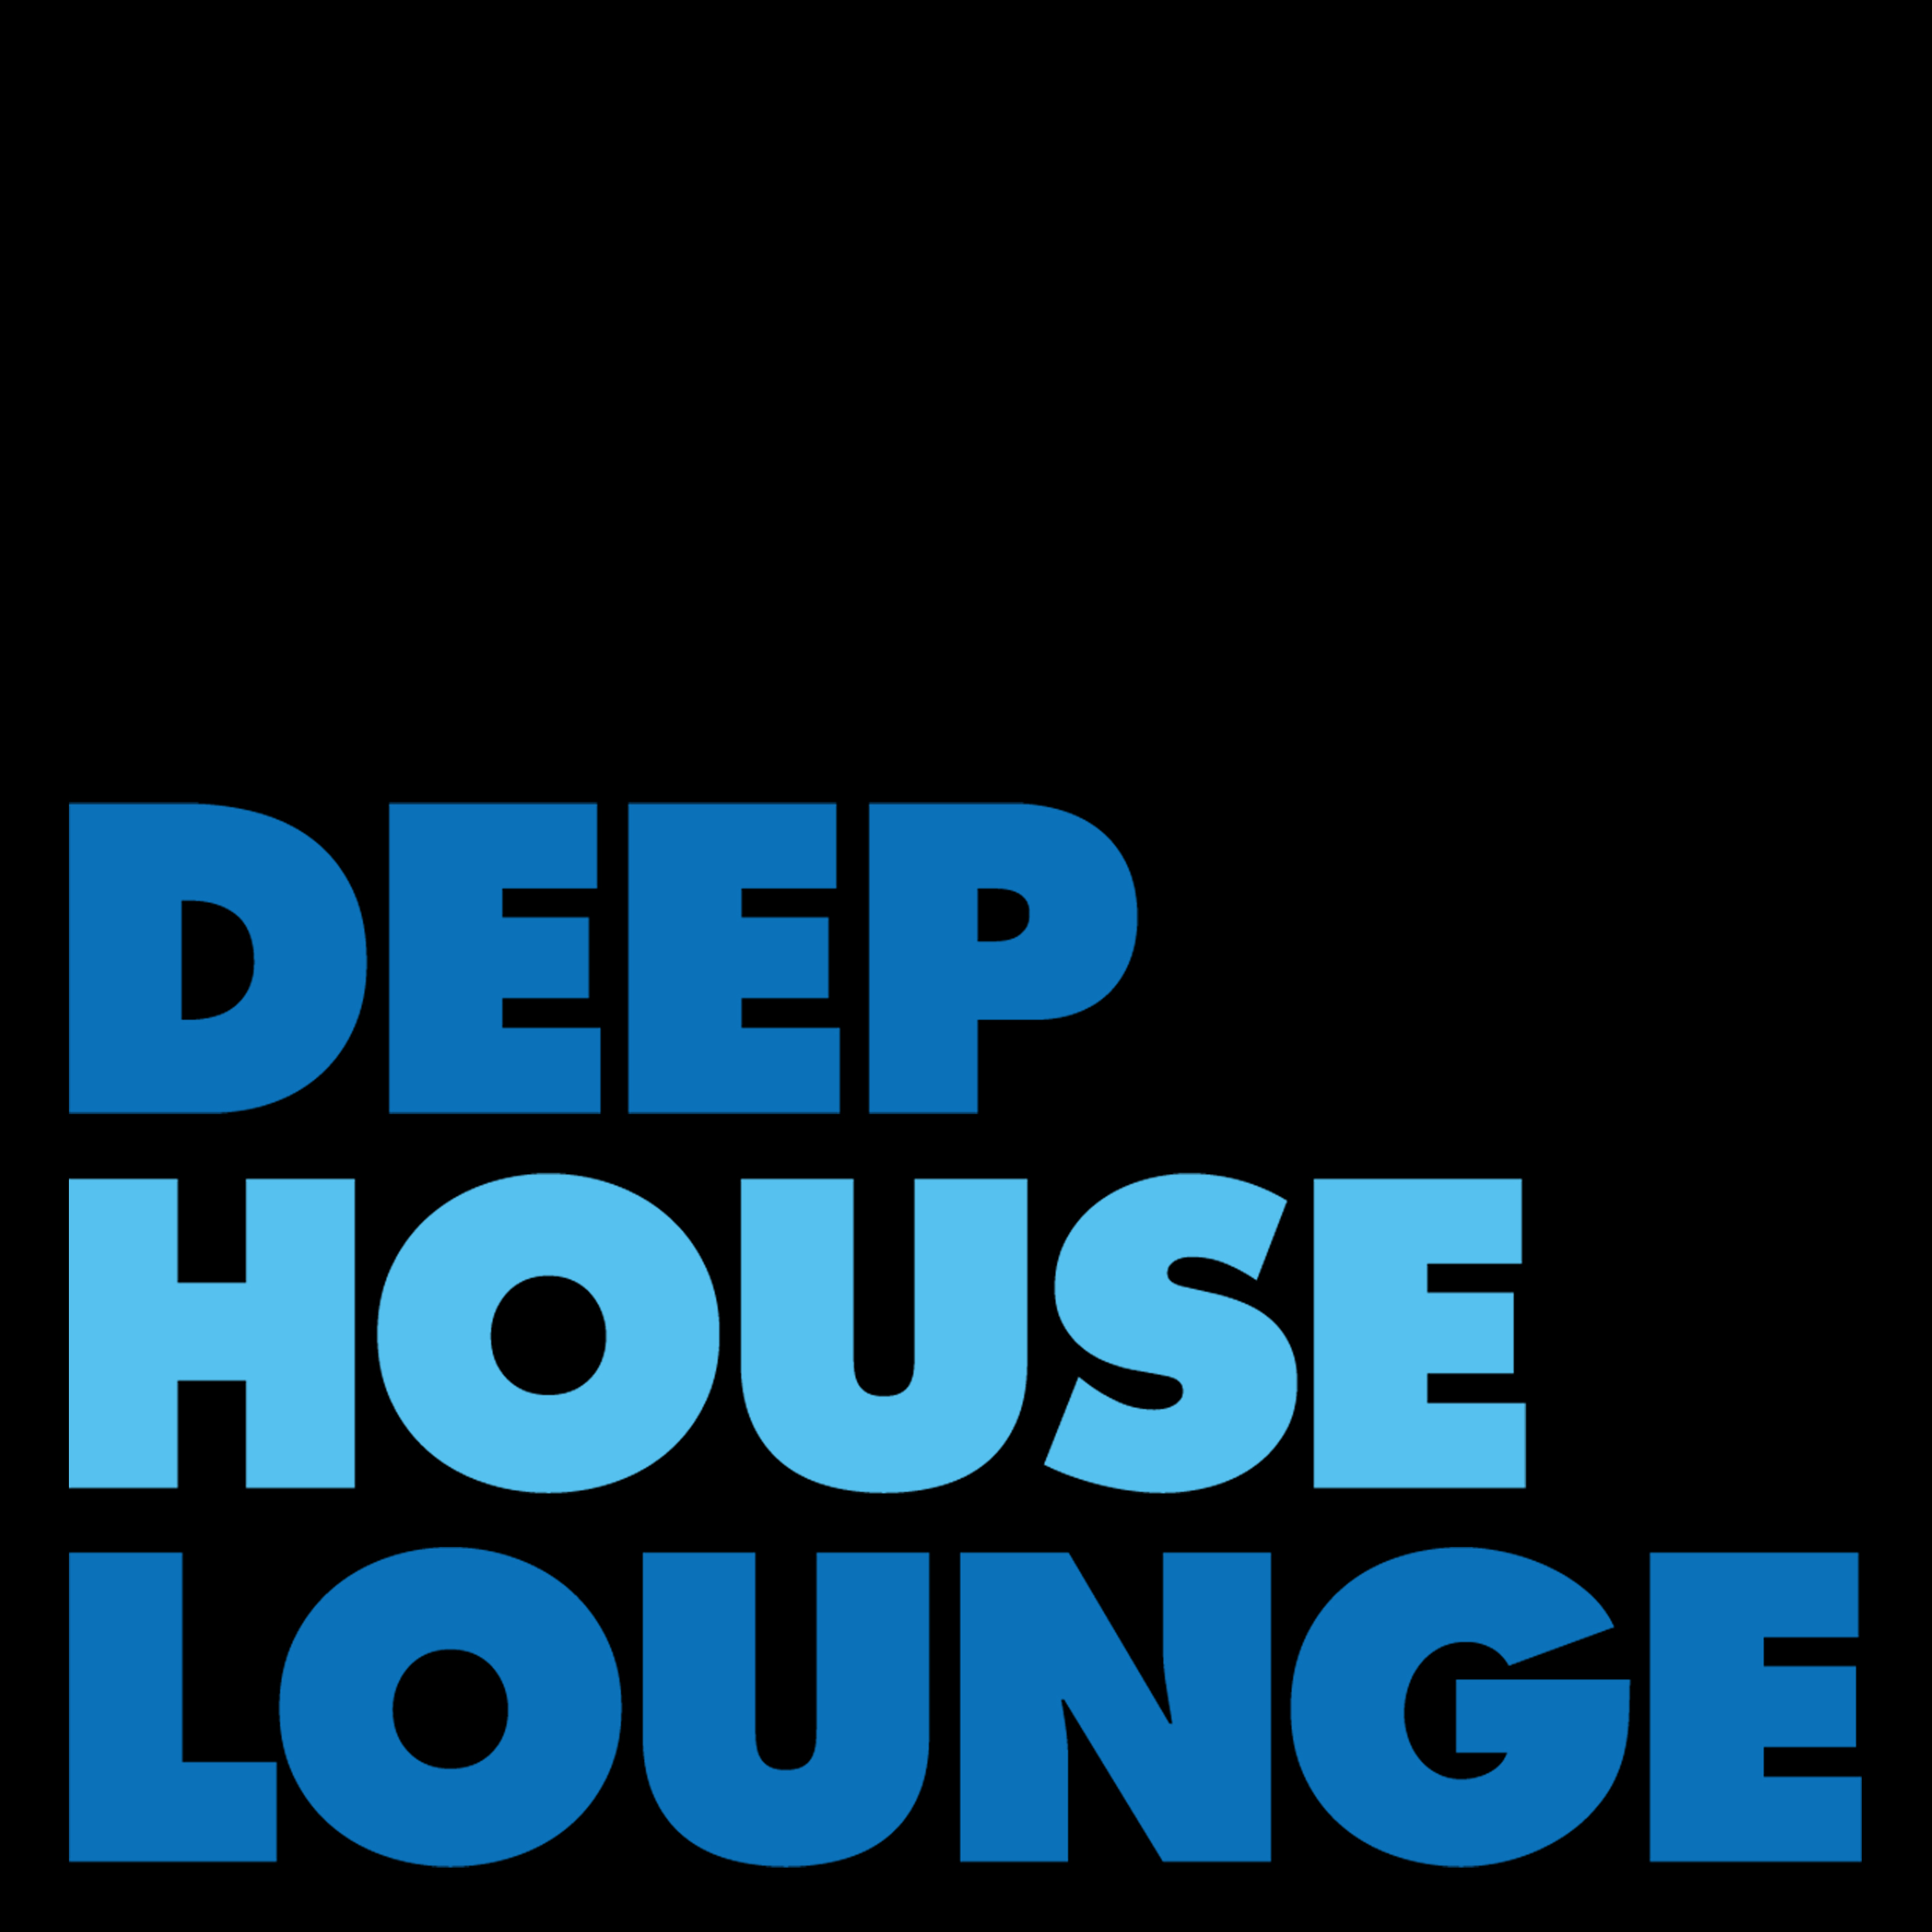 Deep house pictures posters news and videos on your for Deep house chicago